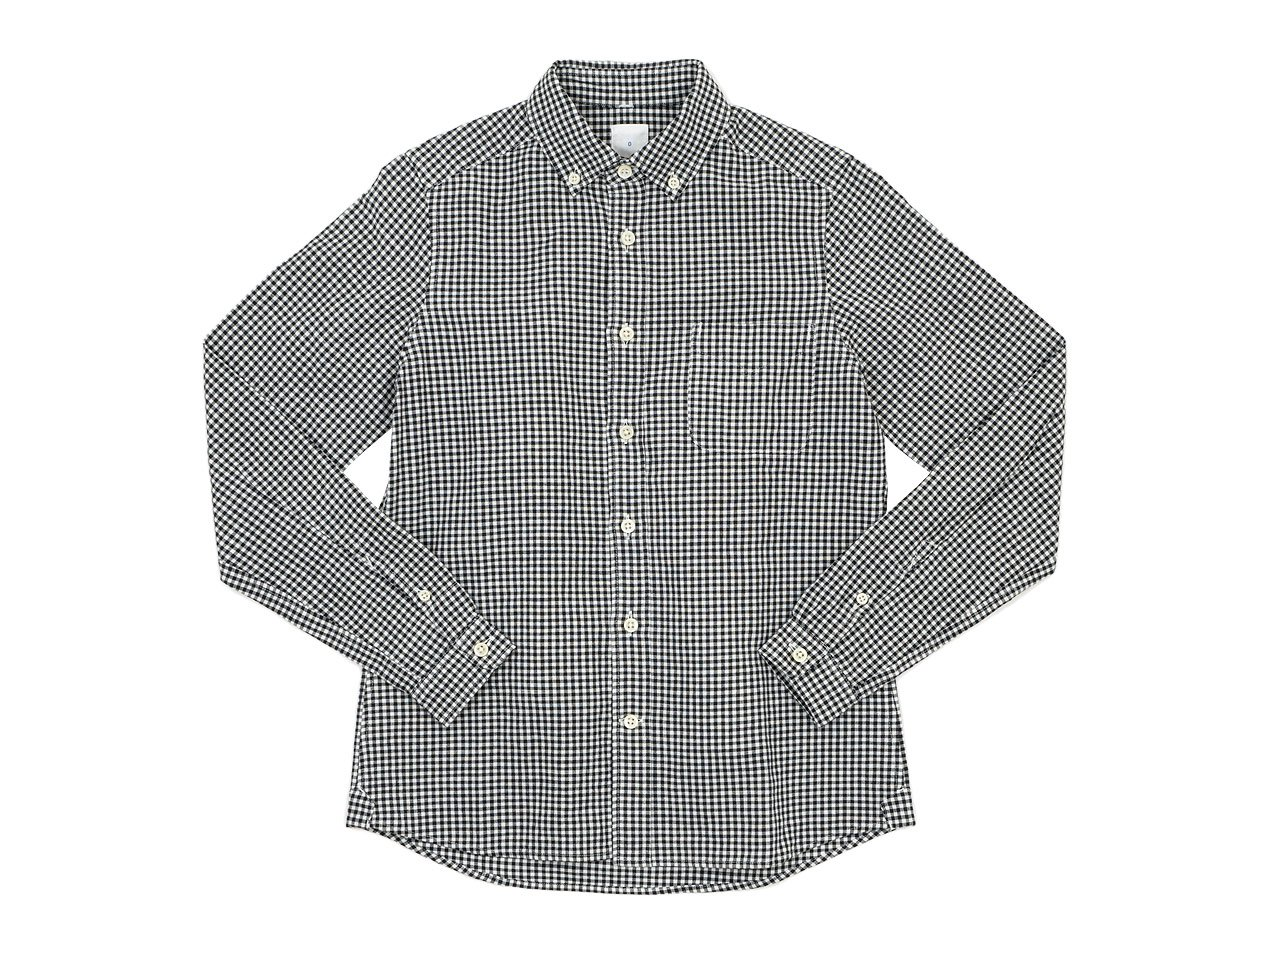 maillot sunset gingham B.D. shirts / round work shirts